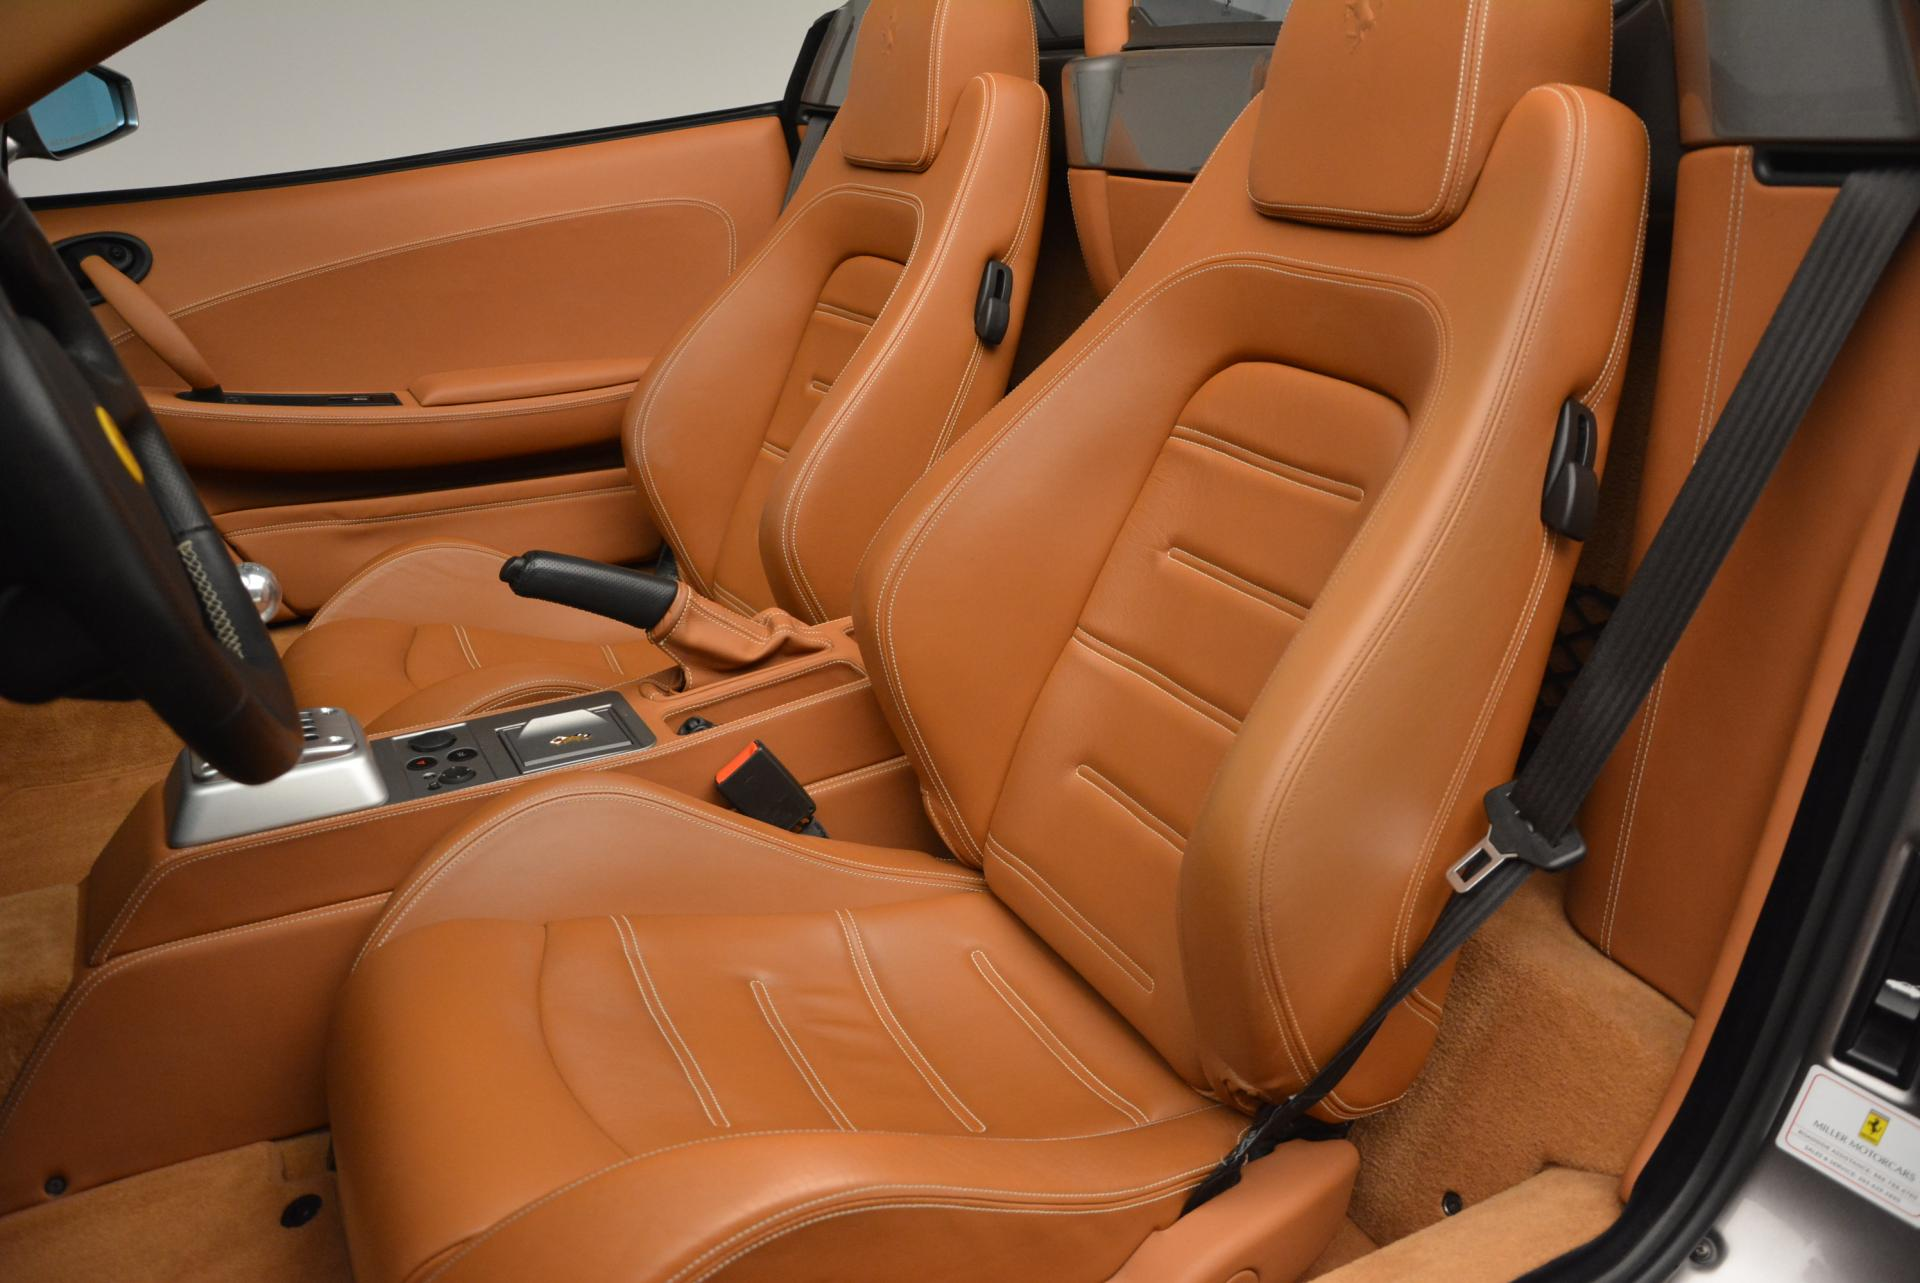 Used 2005 Ferrari F430 Spider 6-Speed Manual For Sale In Greenwich, CT 135_p27